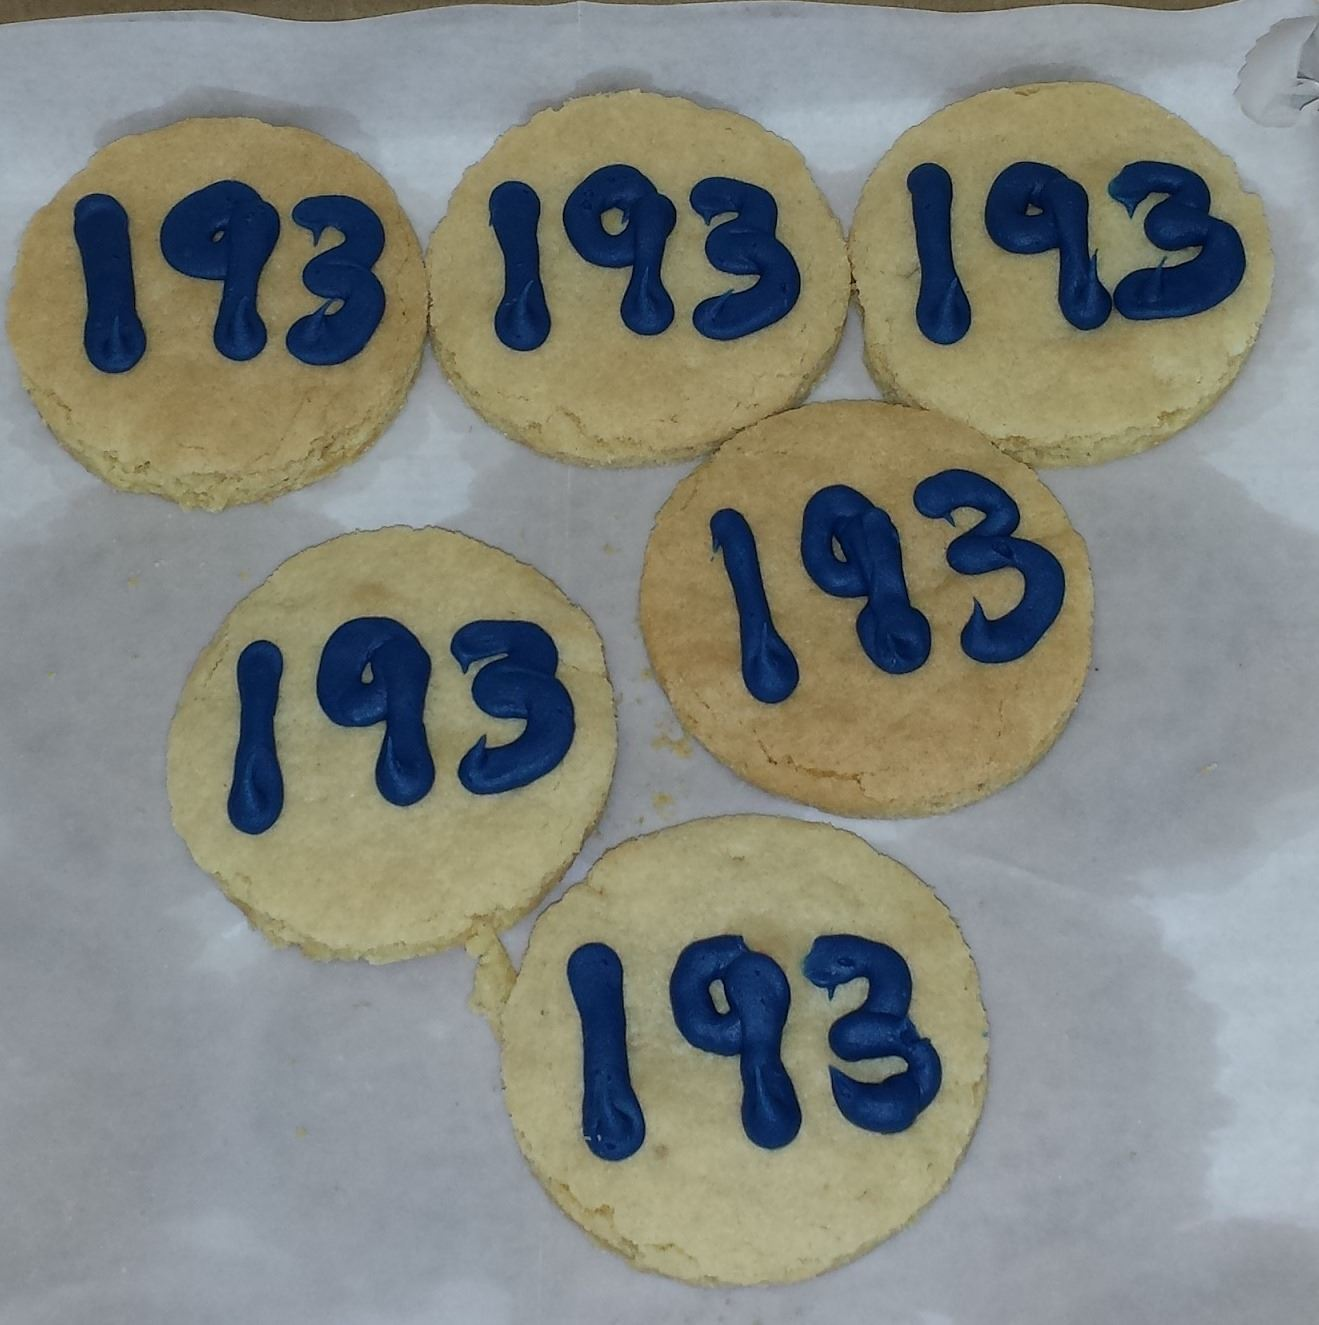 Photo of cookies with number 193 on them